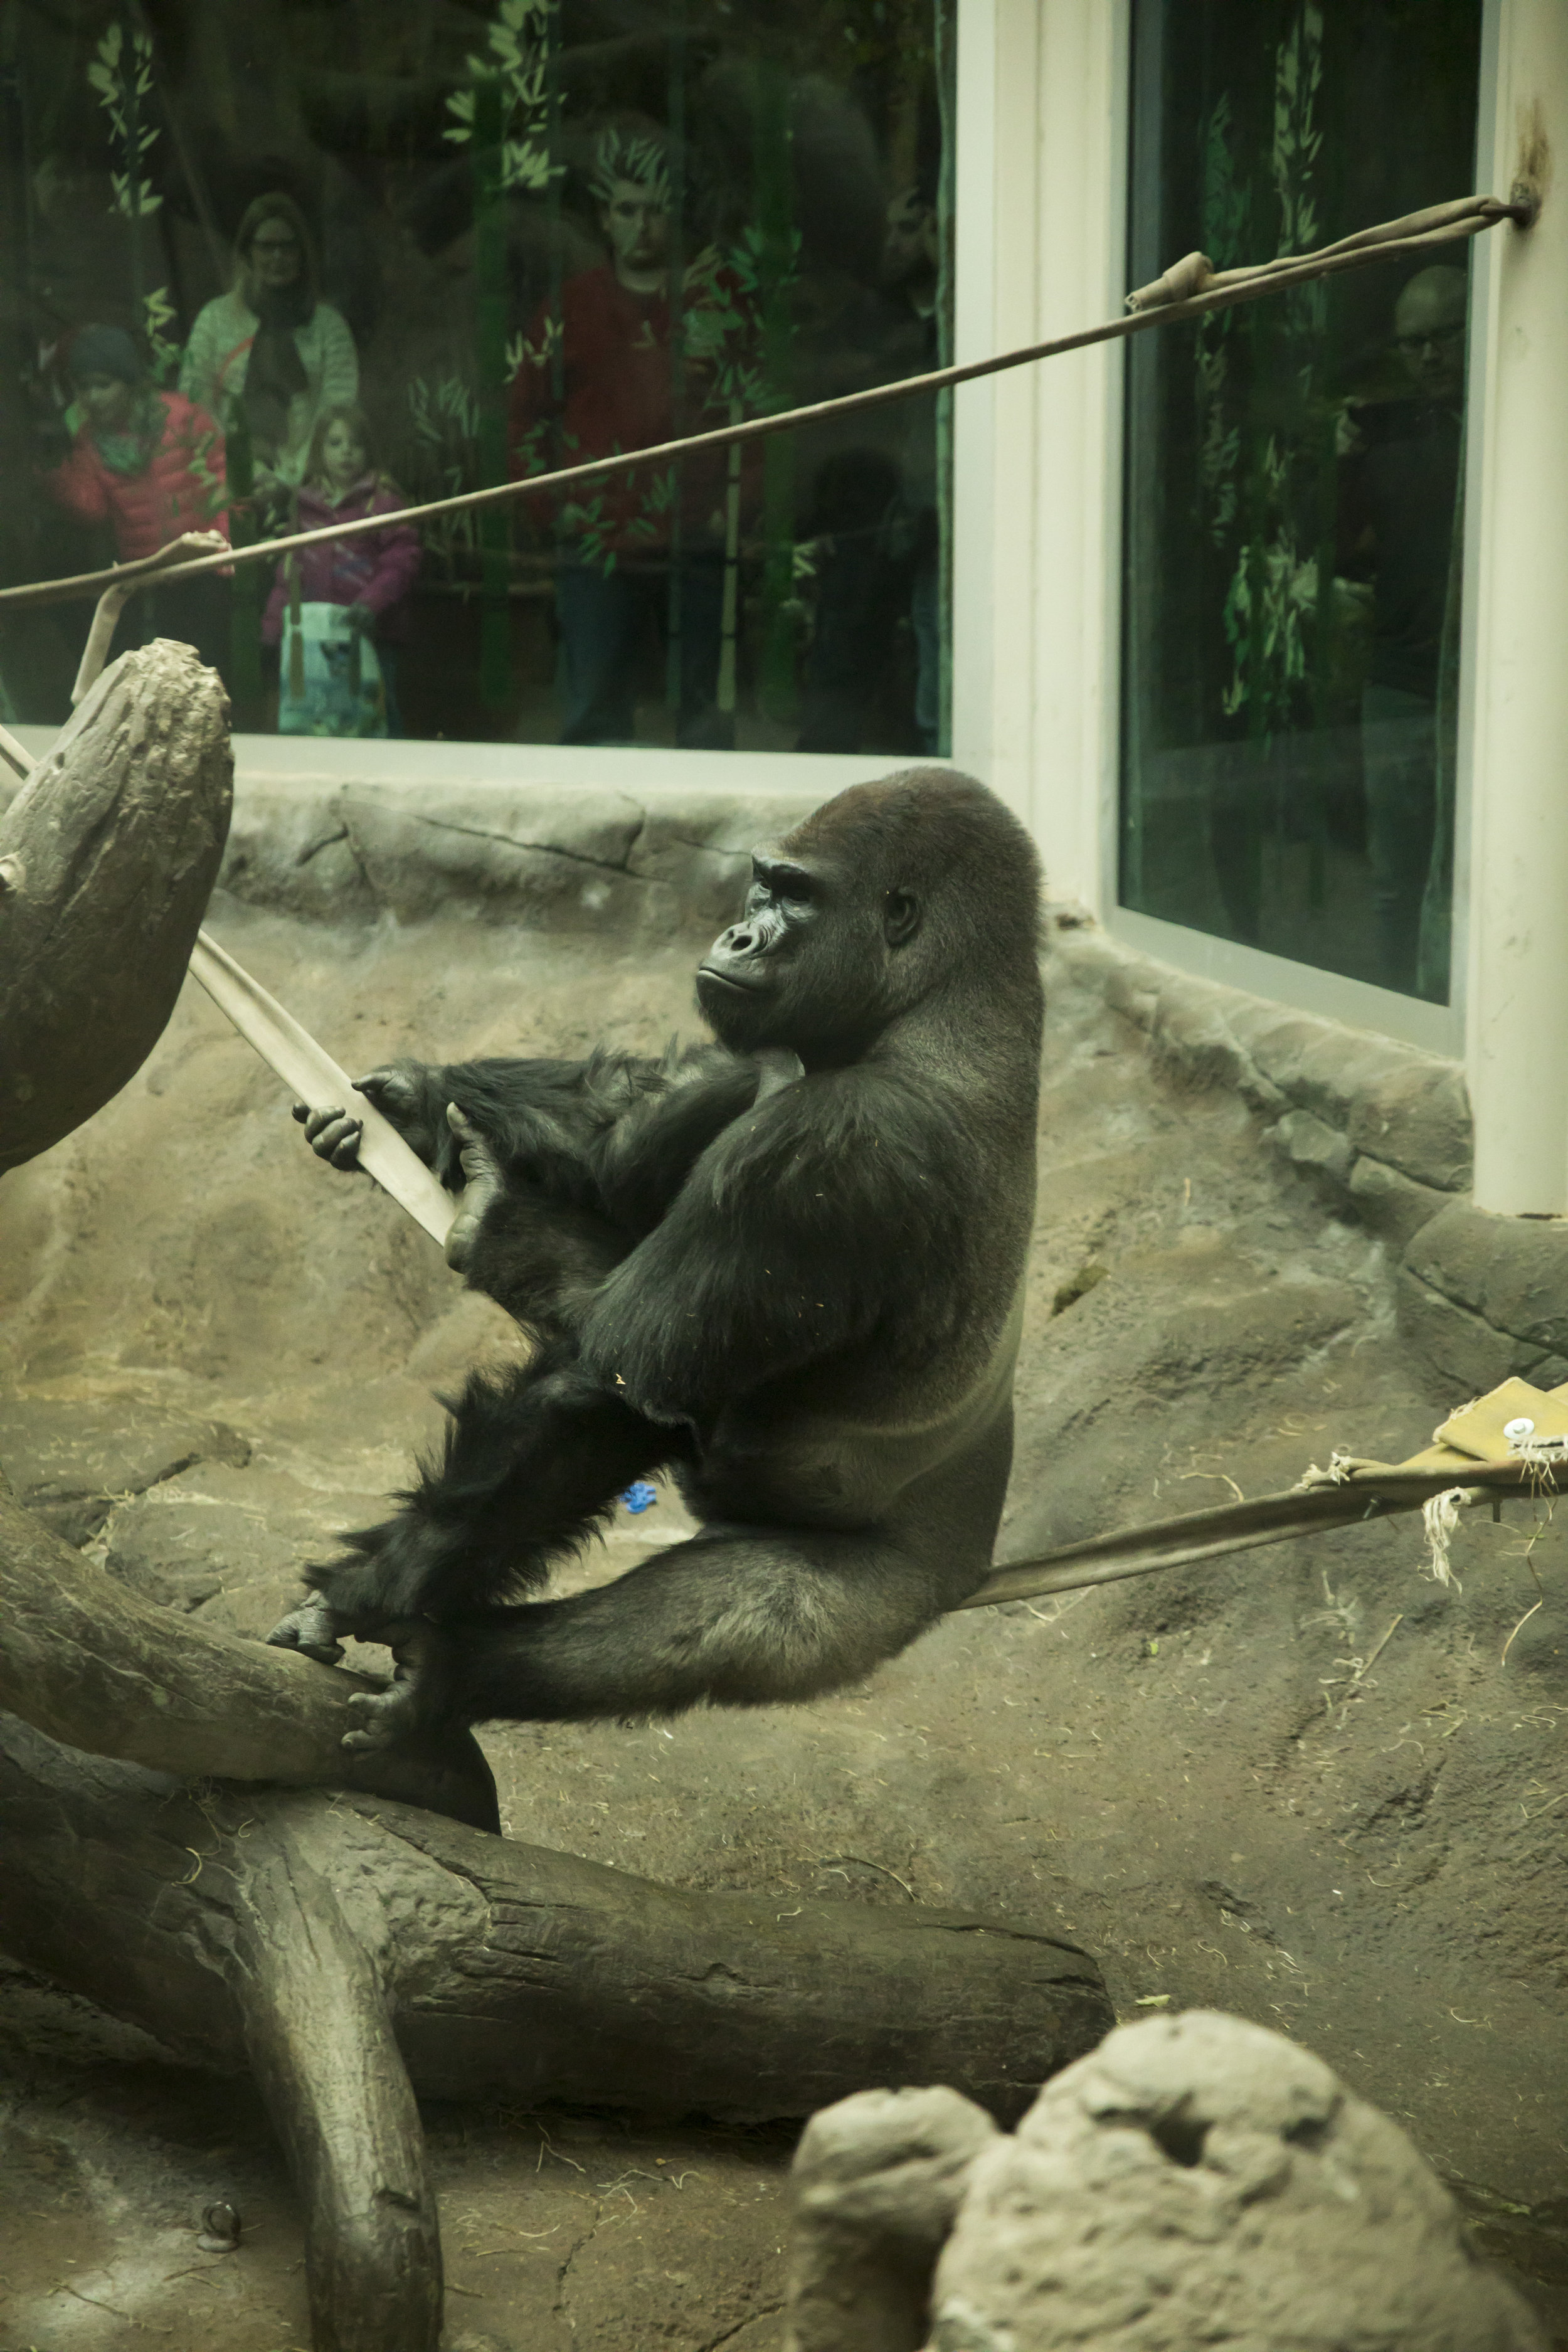 Saint_Louis_Zoo_Photographer_Gorilla.jpg